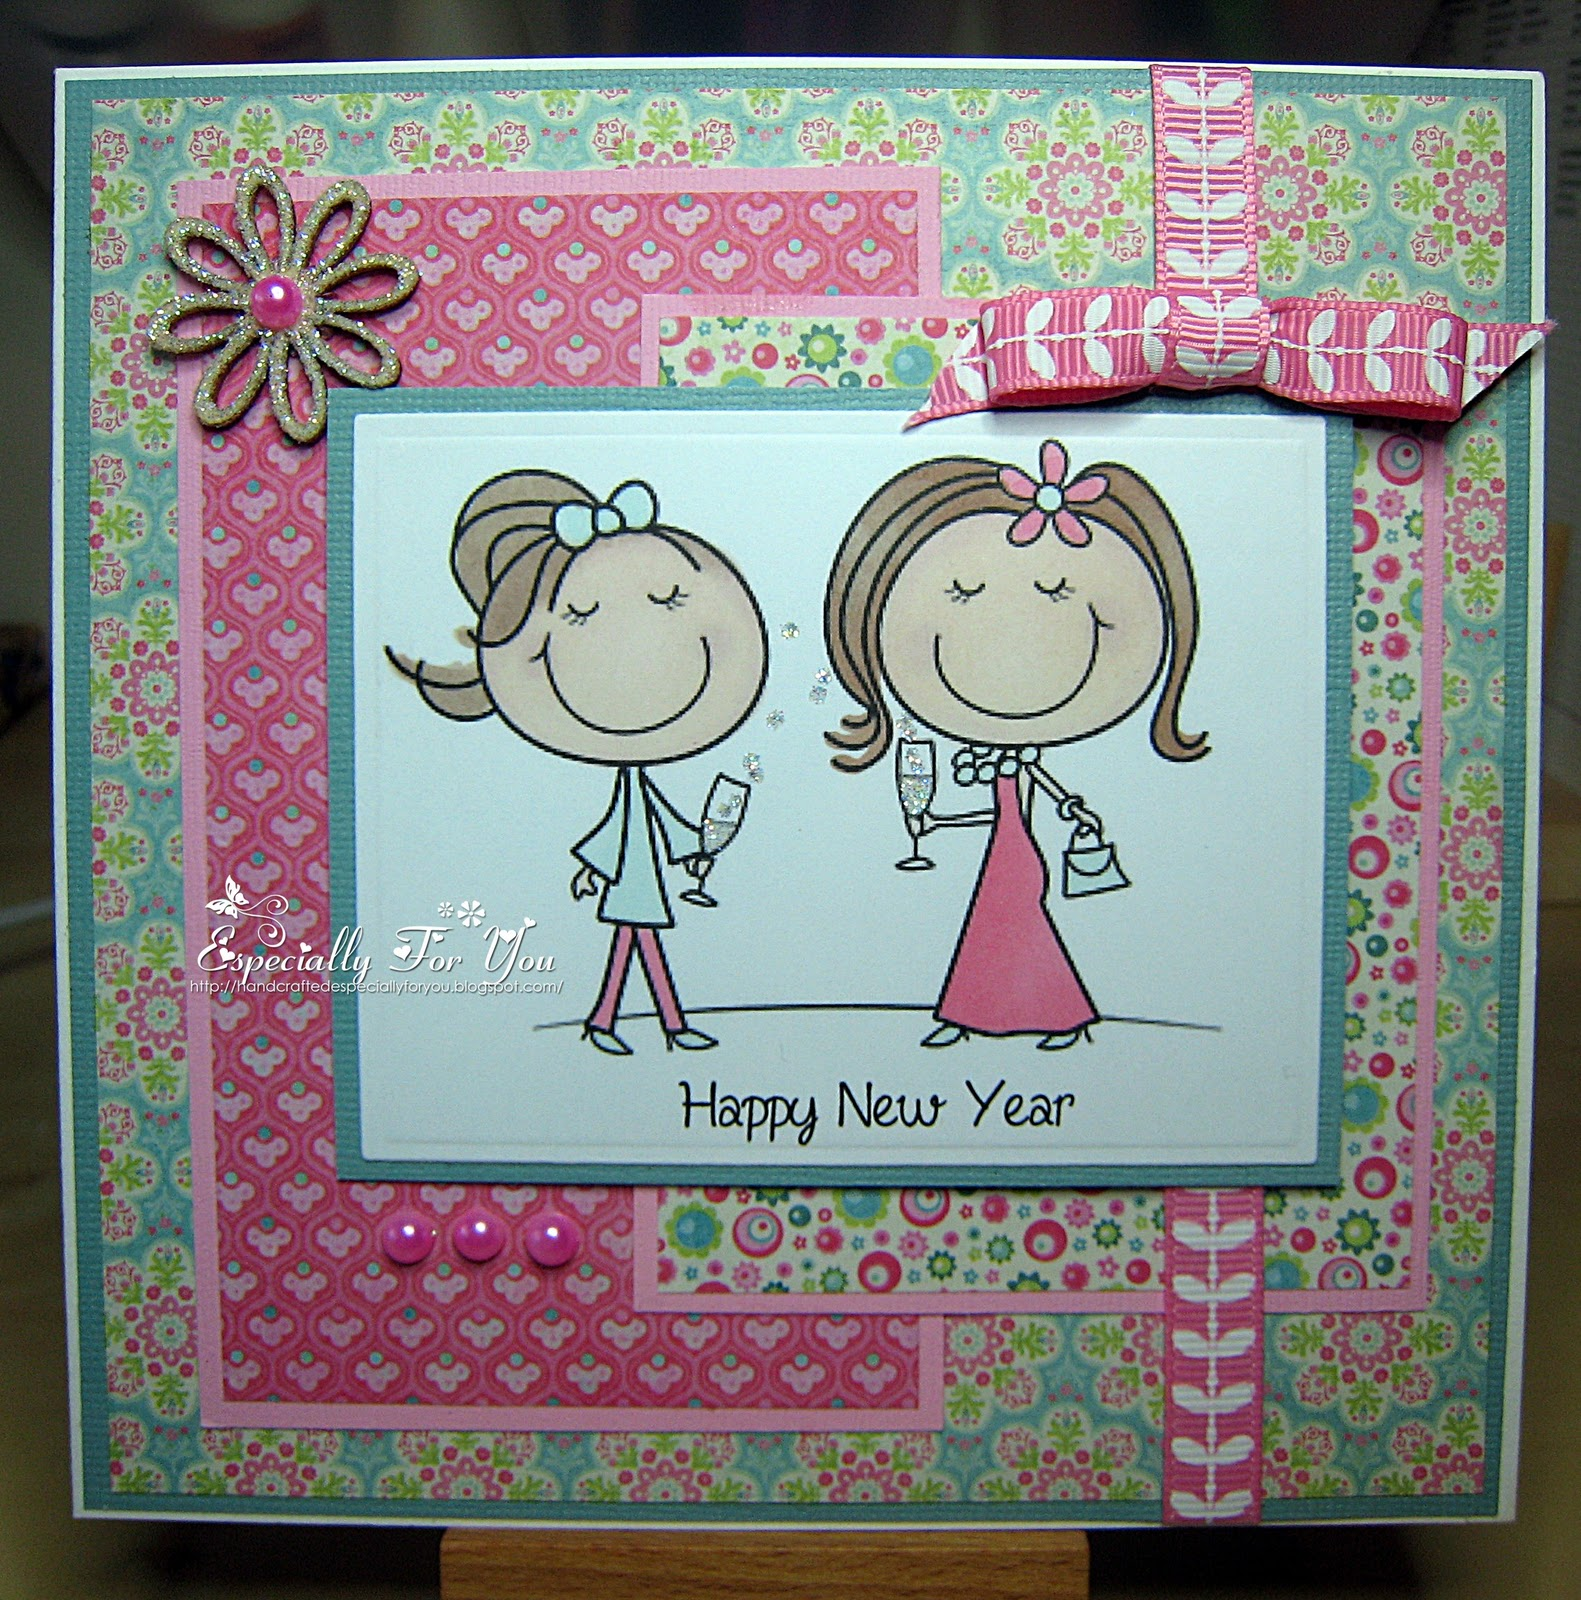 i love this digistamp boutique image and thought it would be perfect for a cute girly happy new year card it reminds me of my cousin and i and our